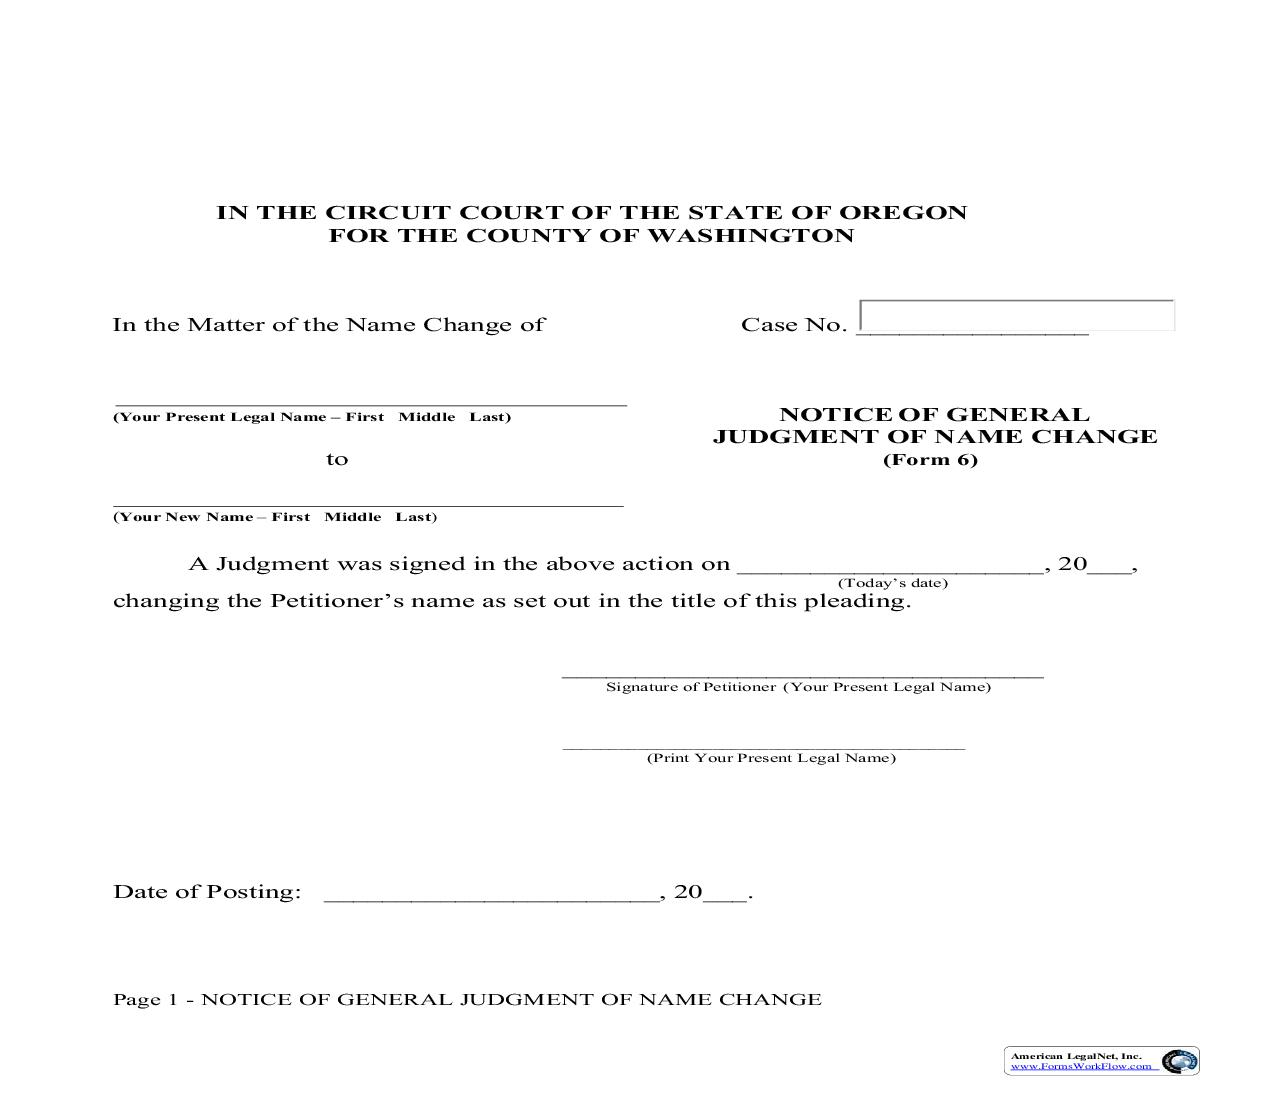 Notice Of General Judgment Of Name Change (Adult) {6}   Pdf Fpdf Doc Docx   Oregon